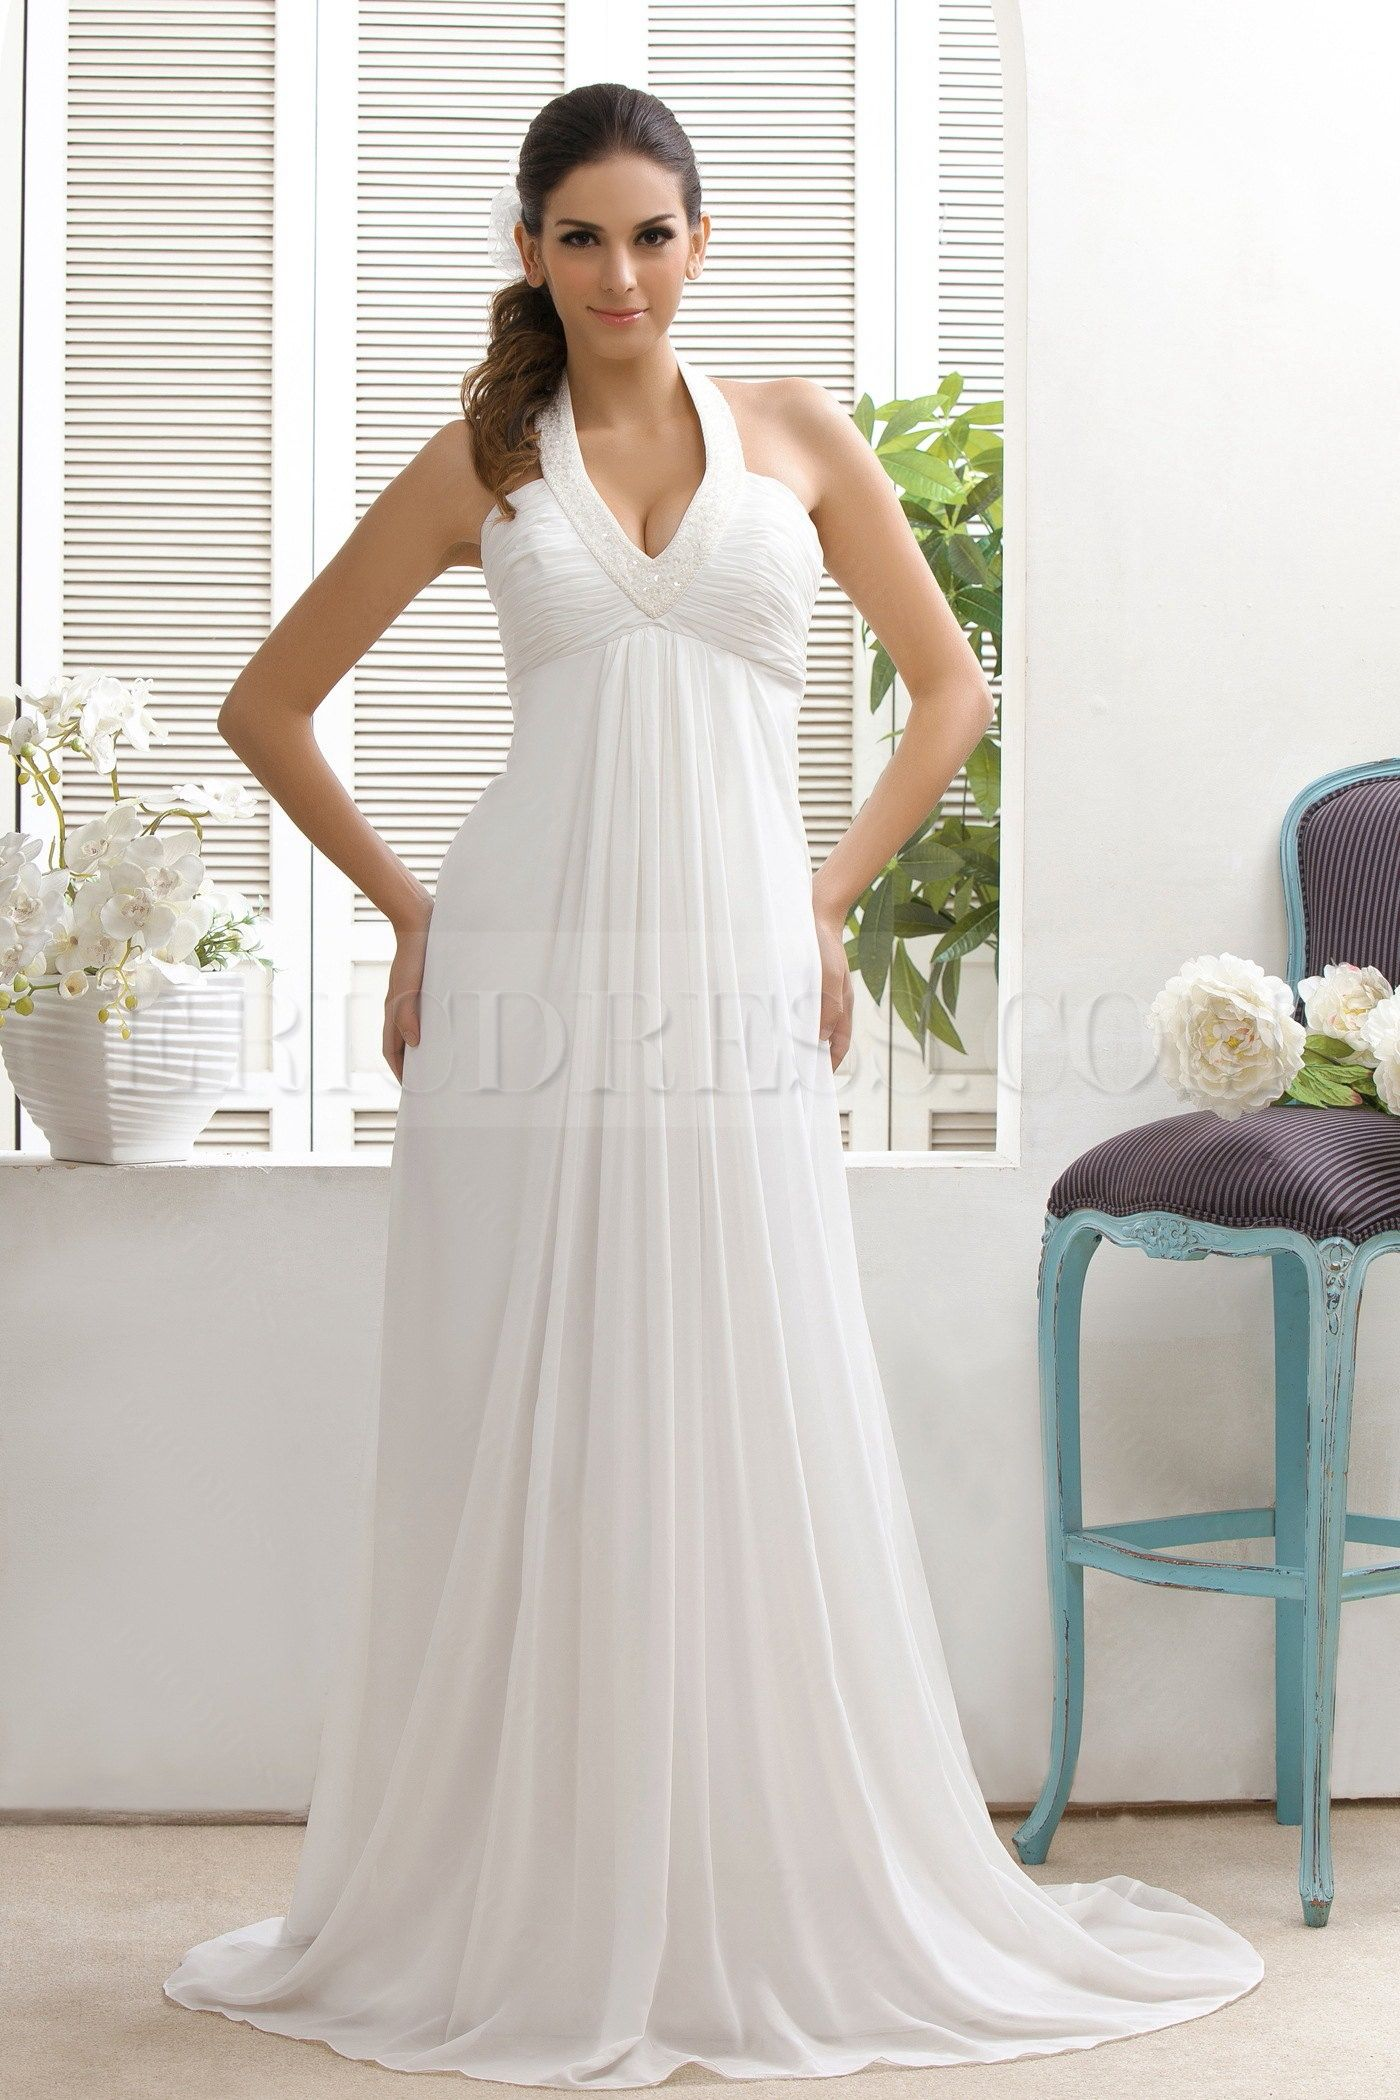 Simple wedding dresses plus size simple wedding dress all simple wedding dresses plus size simple wedding dress all wedding accessories ombrellifo Gallery